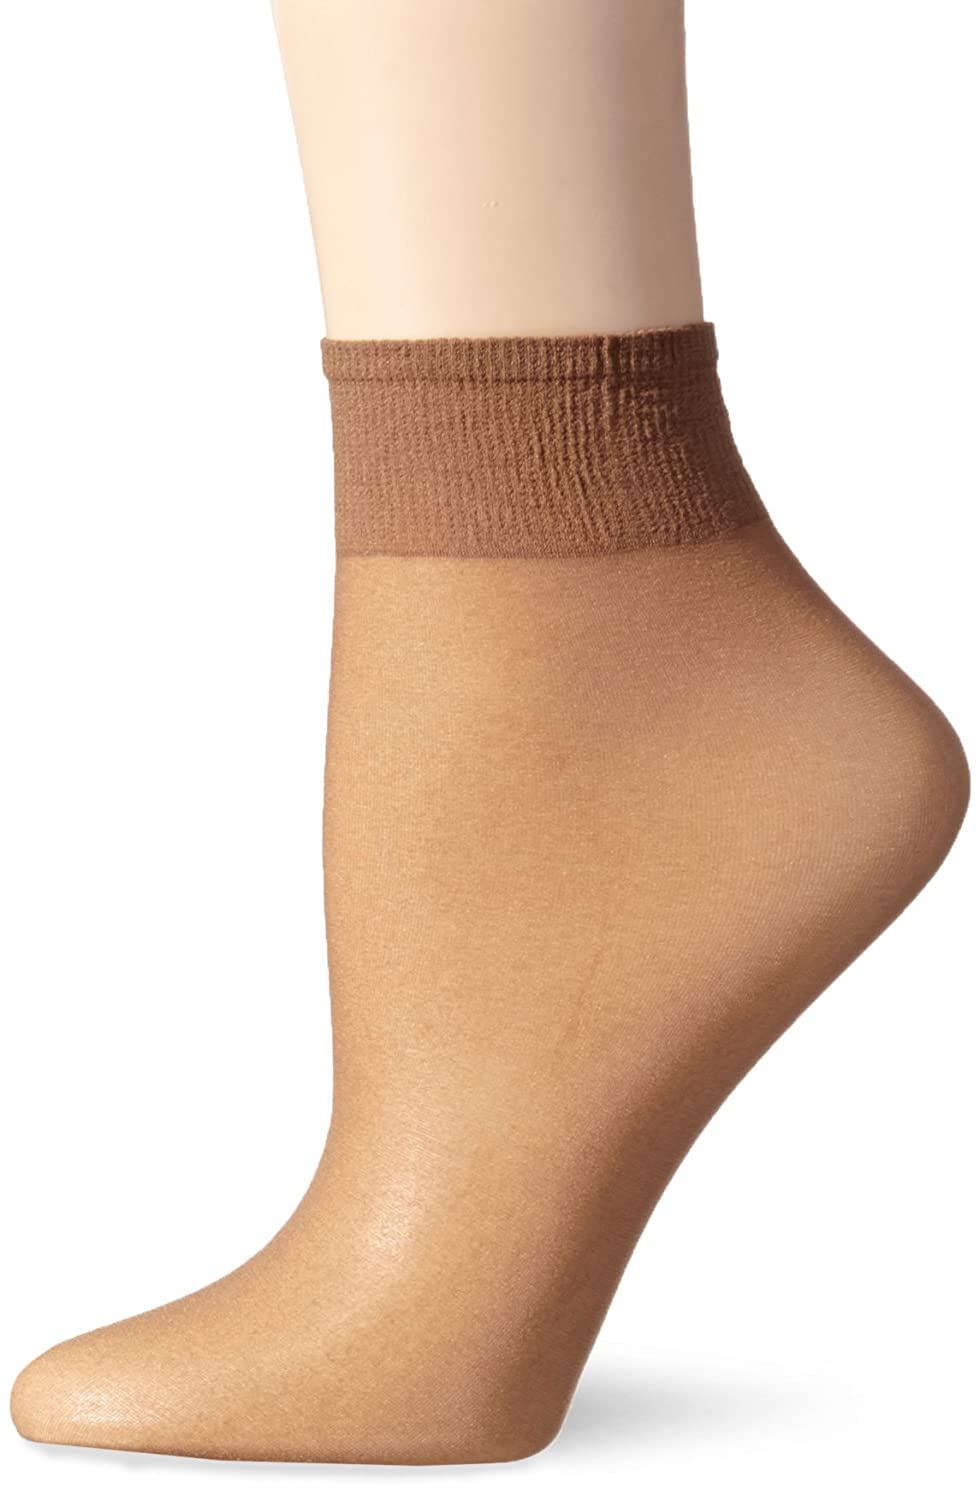 b152e7e7b Details about L eggs Women s Everyday Ankle High Sheer Toe